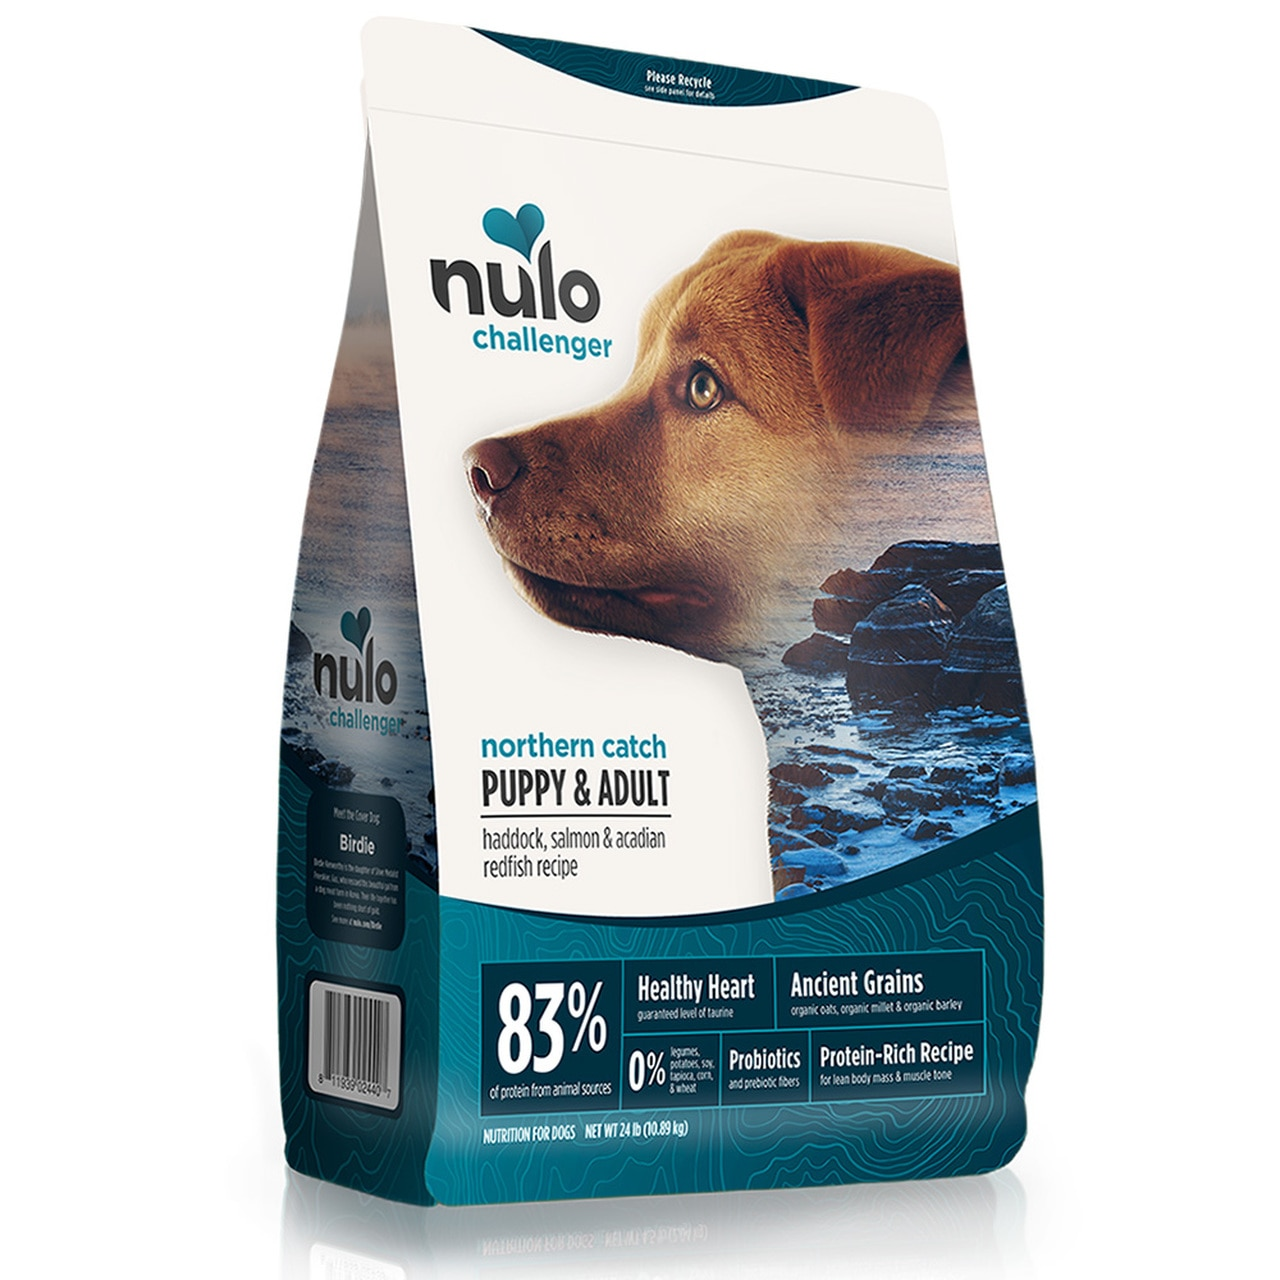 Nulo Challenger Northern Catch Haddok, Salmon & Redfish Puppy & Adult Dry Dog Food Image